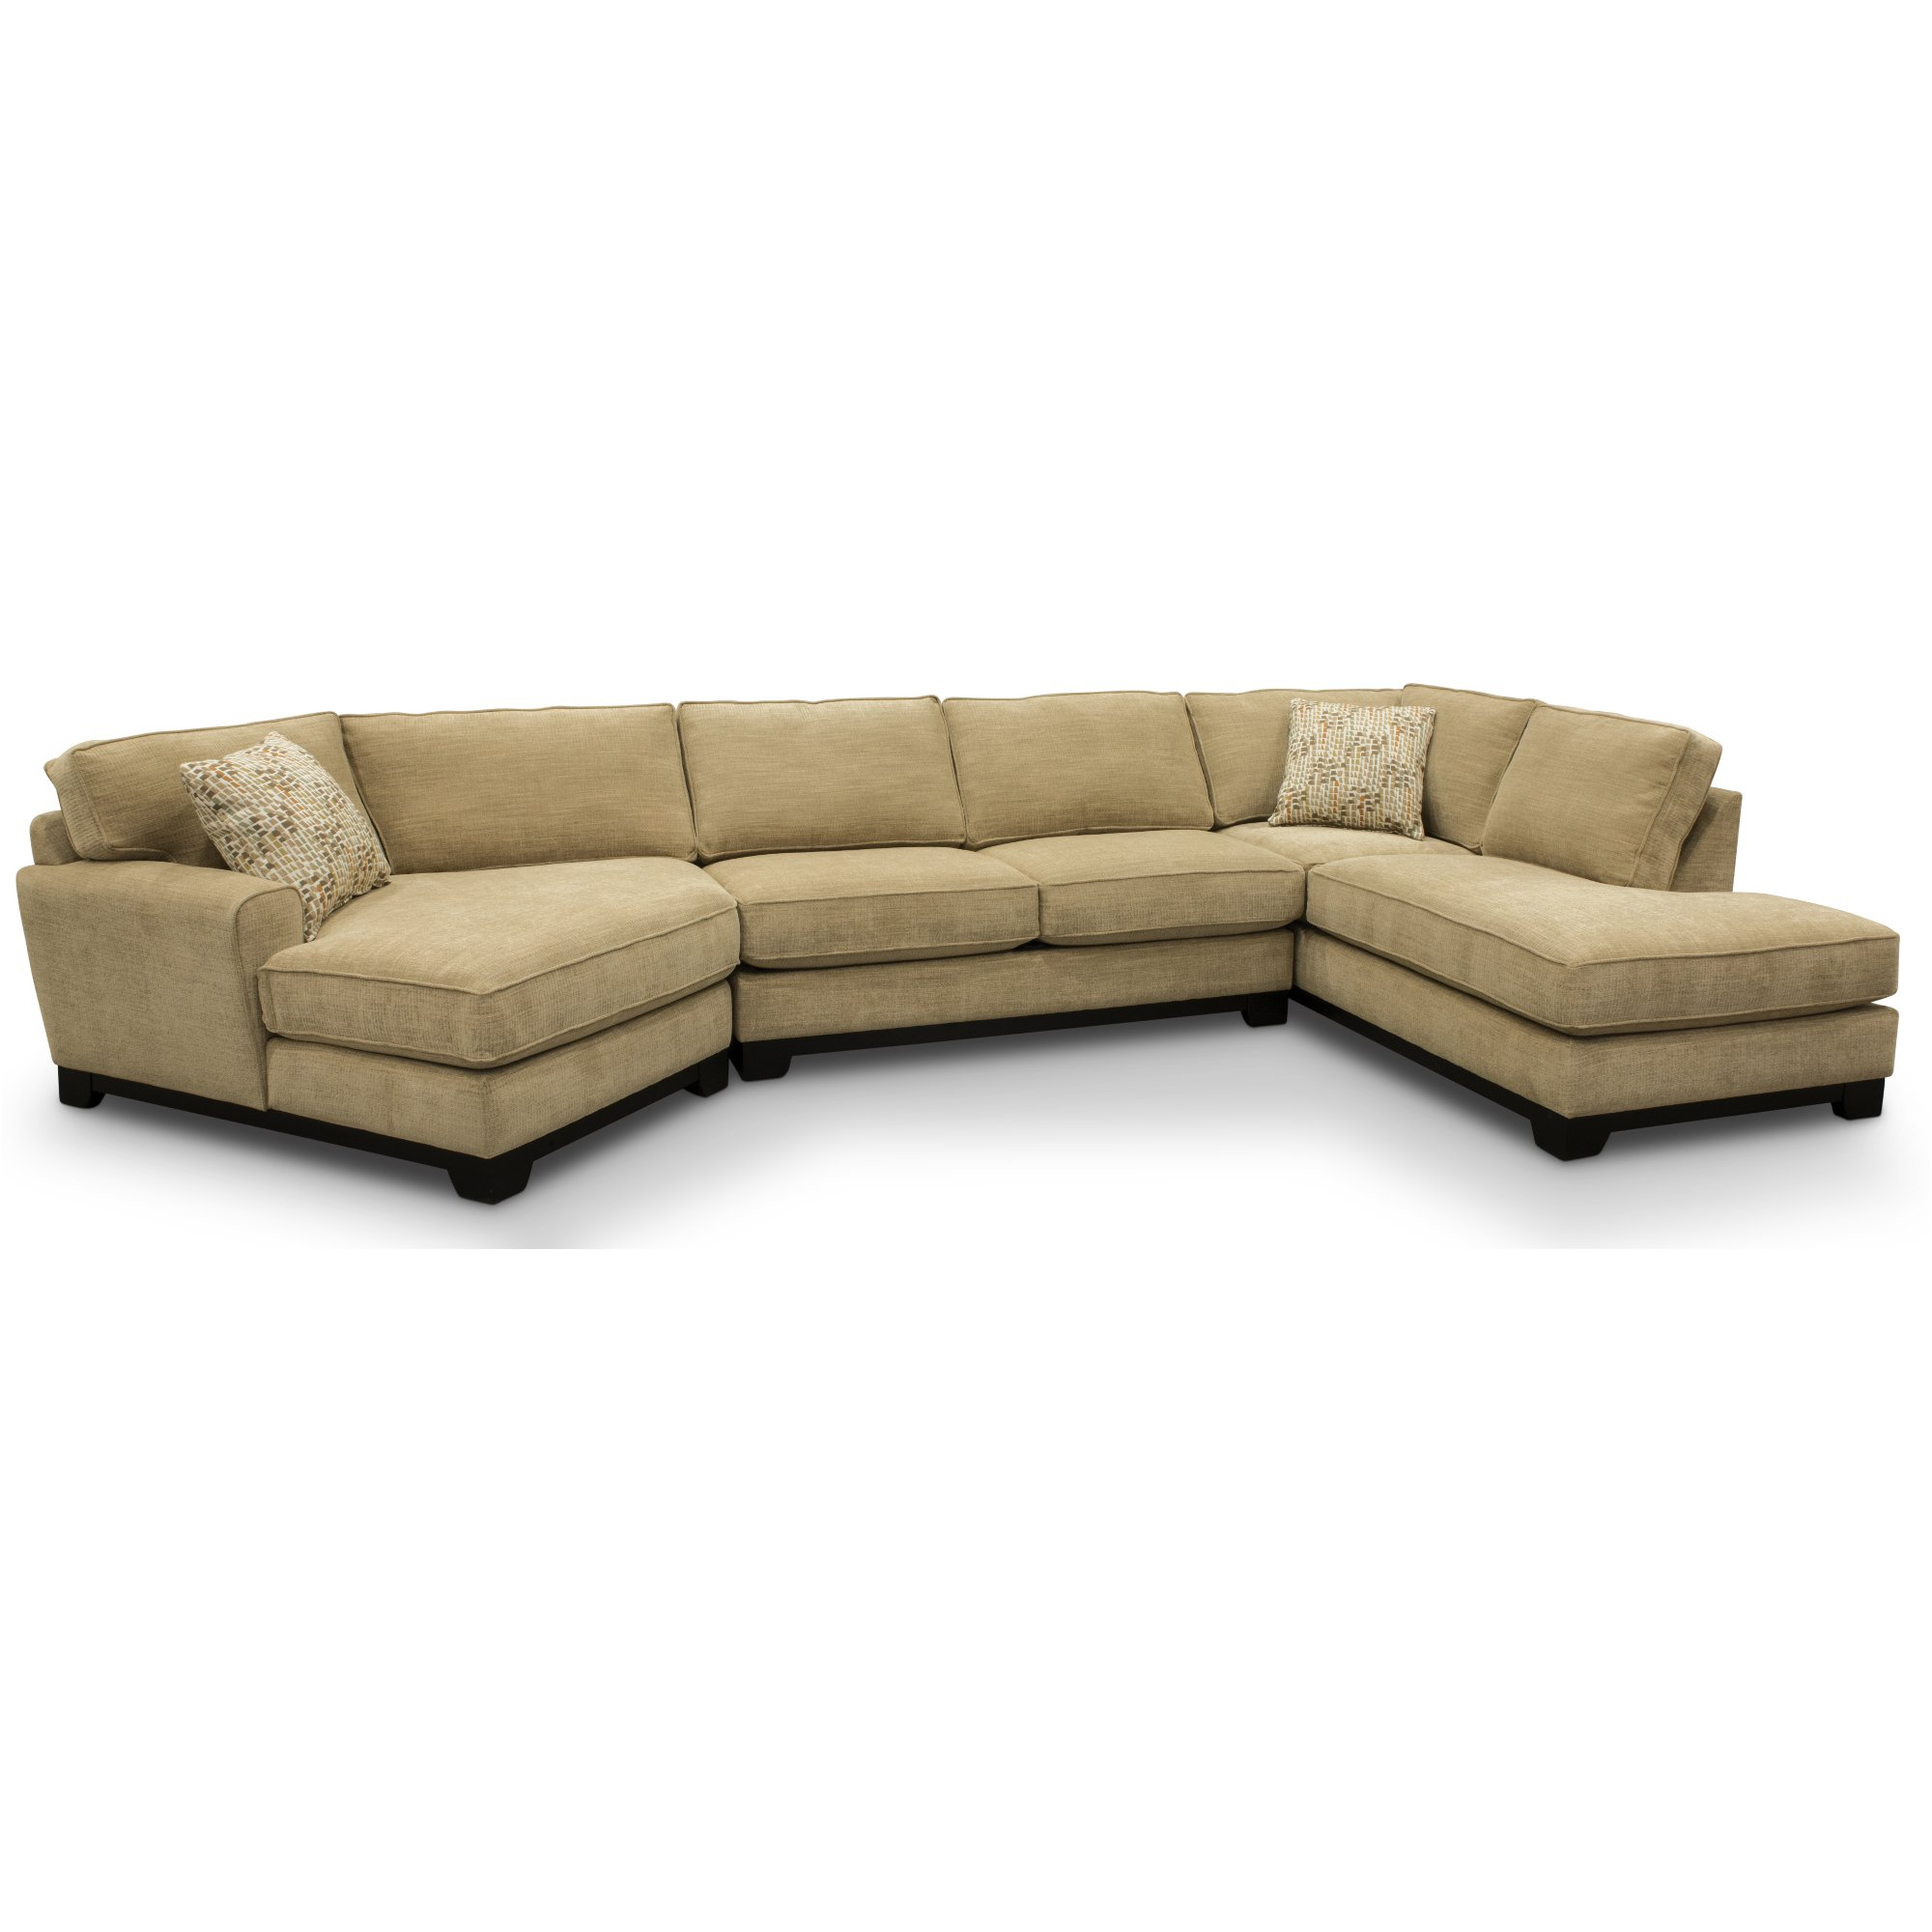 design ideas sofas furniture cool lovely best a of sofa beige steal sectional outlet los leather contemporary